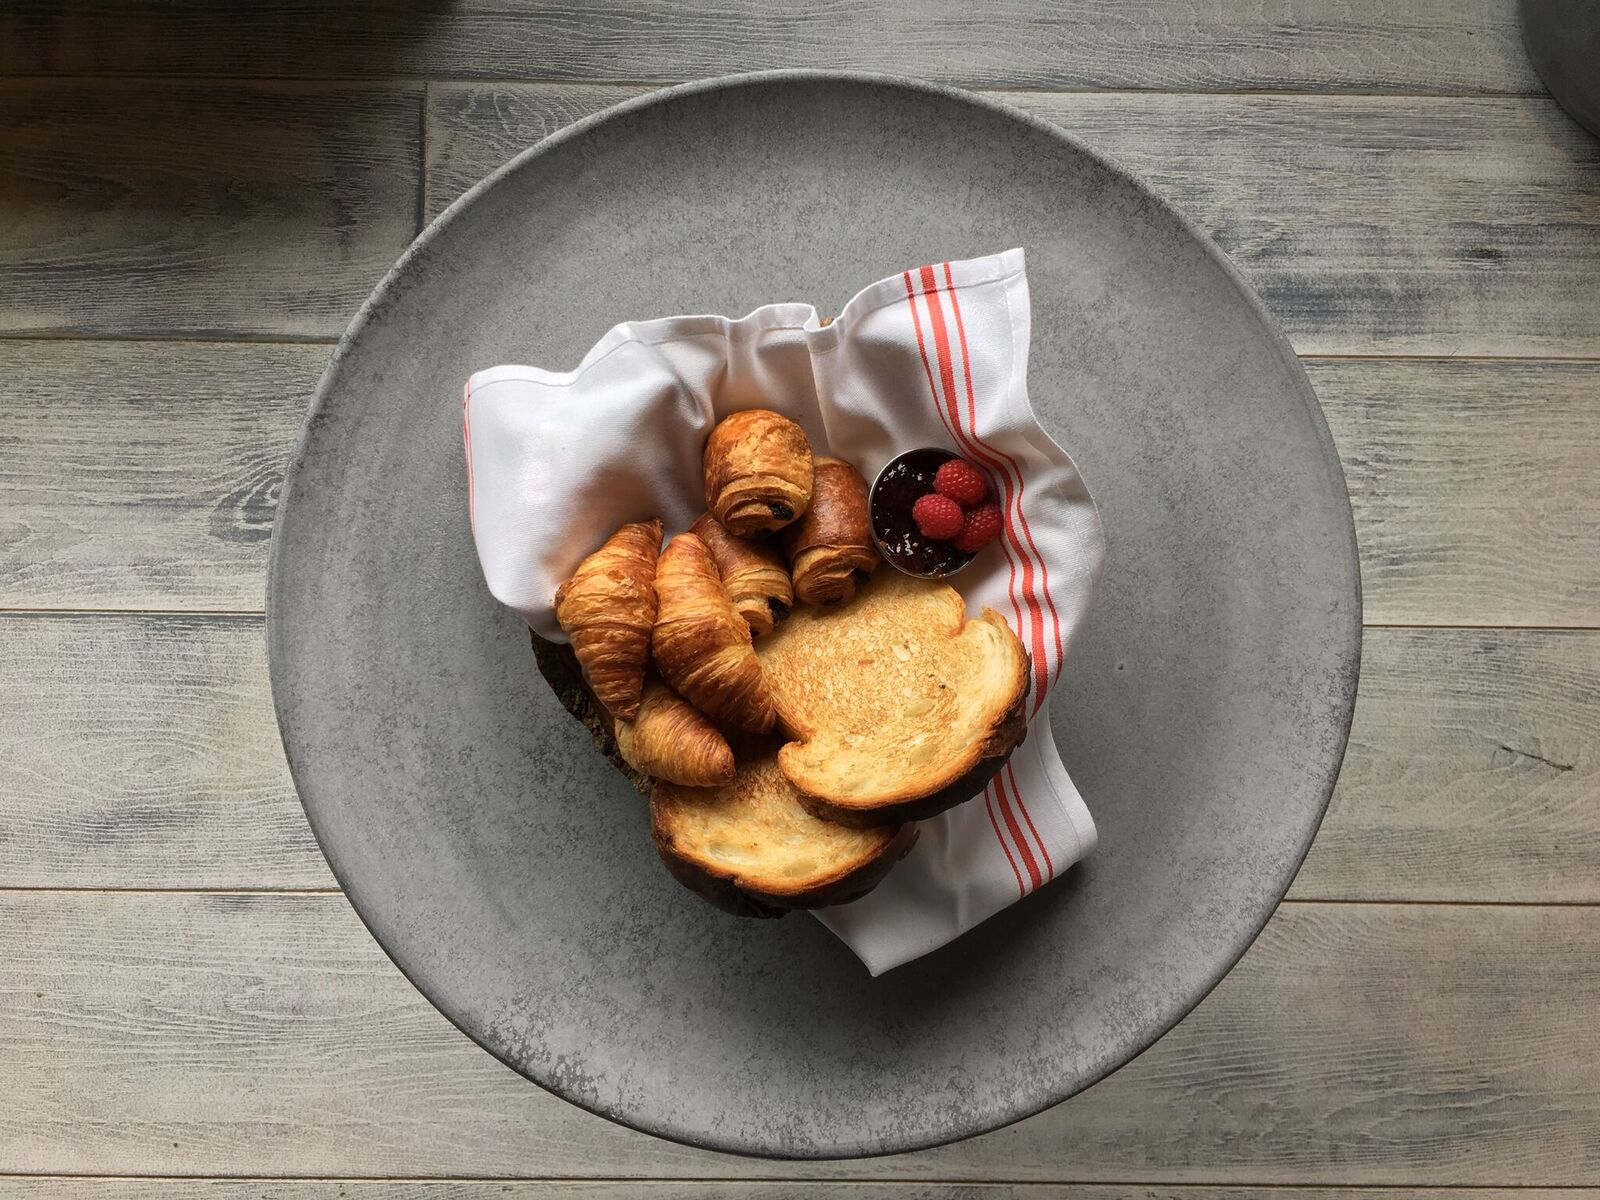 Croissants, toasted brioche, baked bread image: arbor